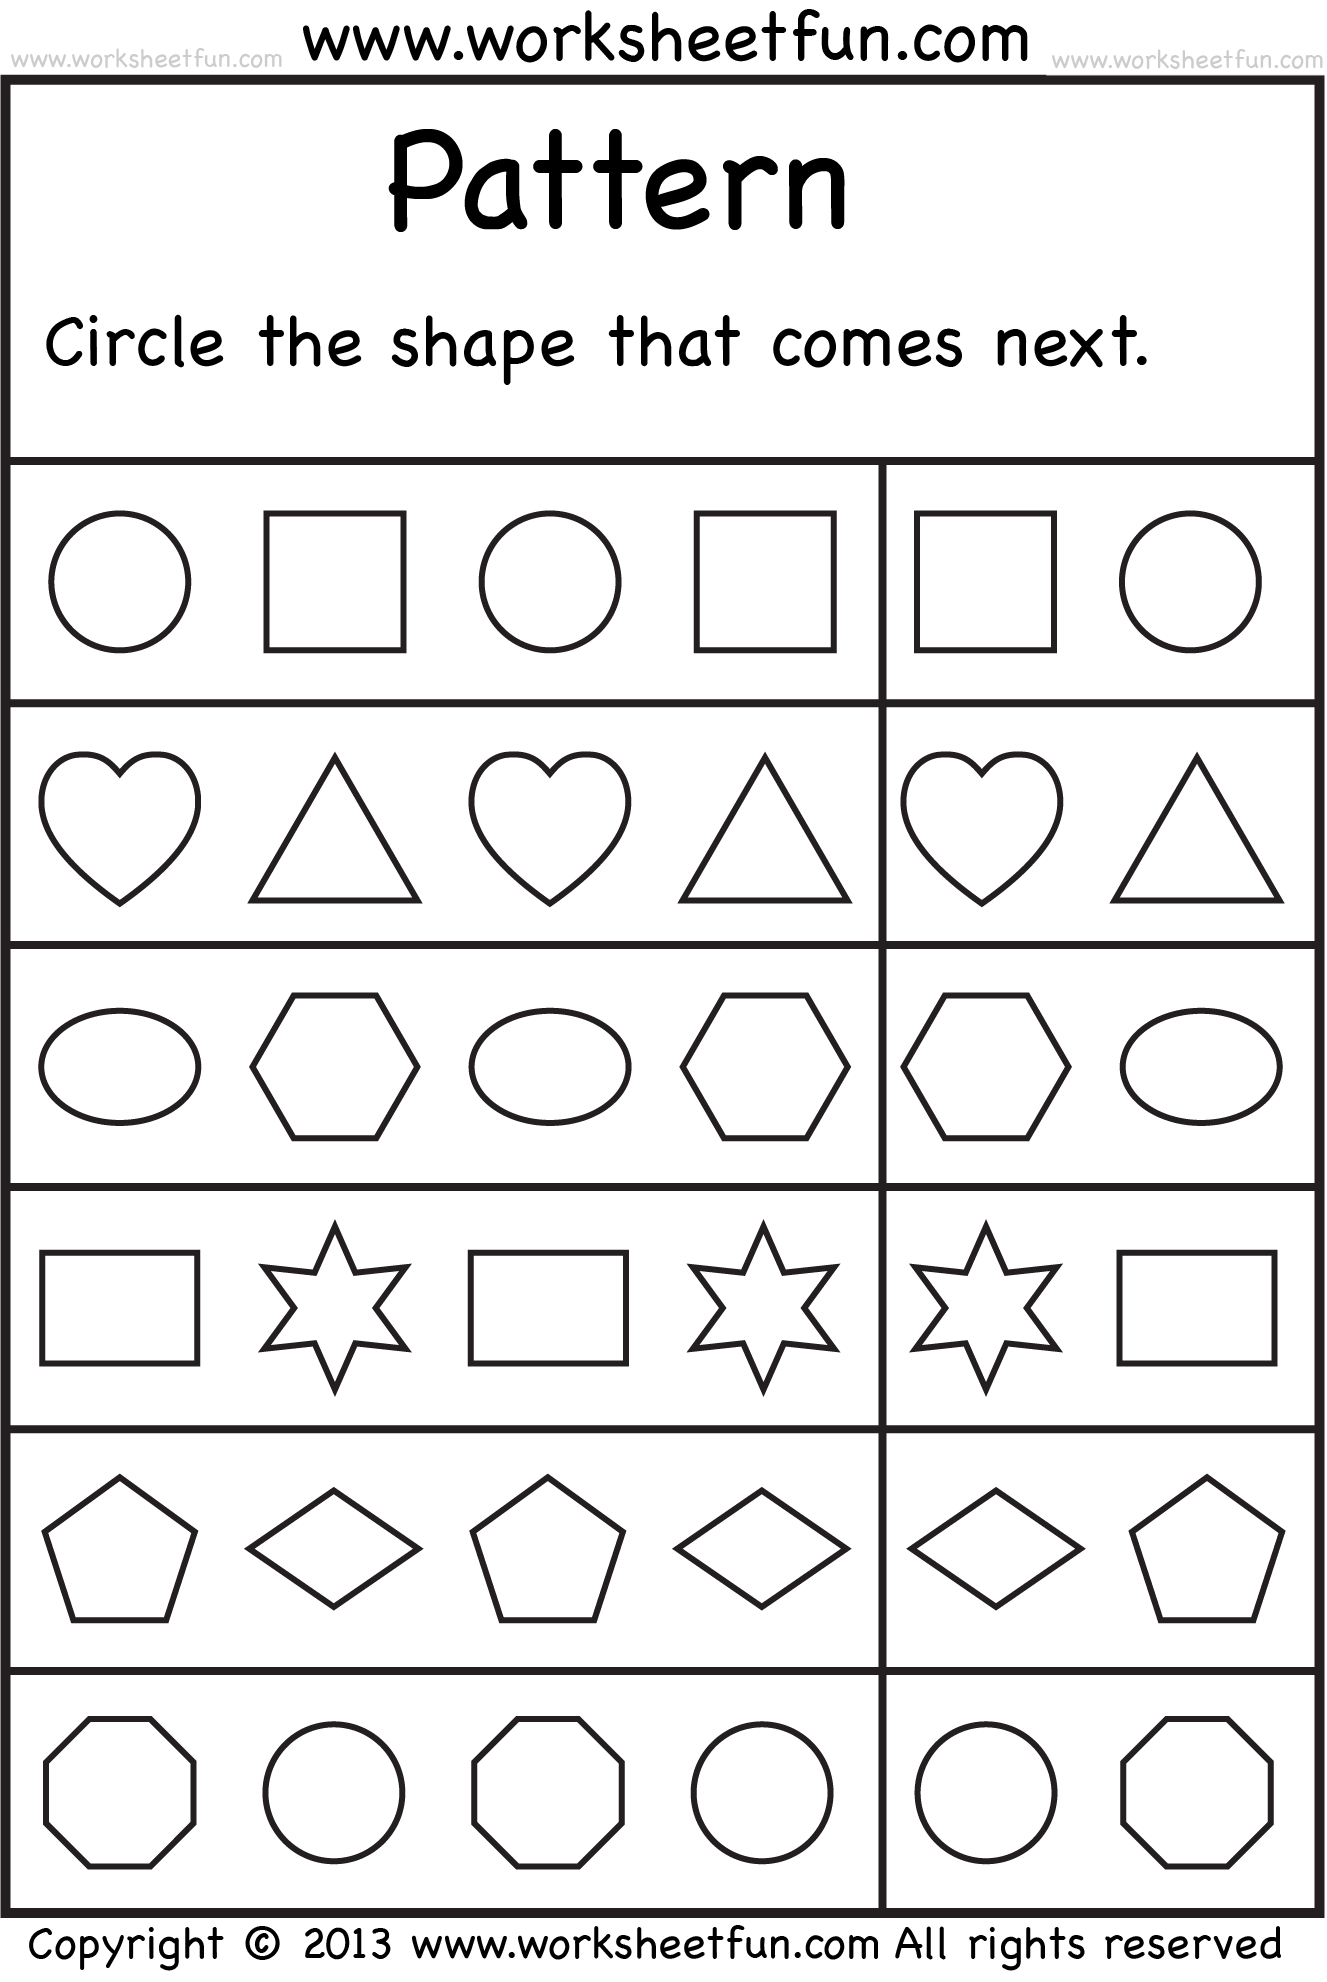 Weirdmailus  Splendid  Images About School Worksheets On Pinterest  Number Words  With Goodlooking  Images About School Worksheets On Pinterest  Number Words Alphabet Worksheets And Free Printable Kindergarten Worksheets With Attractive Th Grade Math Worksheets Word Problems Also Subnetting Practice Worksheets In Addition Pre K Kindergarten Worksheets And Life Cycle Of Frog Worksheet As Well As Th Grade Reading Worksheet Additionally R Worksheet From Pinterestcom With Weirdmailus  Goodlooking  Images About School Worksheets On Pinterest  Number Words  With Attractive  Images About School Worksheets On Pinterest  Number Words Alphabet Worksheets And Free Printable Kindergarten Worksheets And Splendid Th Grade Math Worksheets Word Problems Also Subnetting Practice Worksheets In Addition Pre K Kindergarten Worksheets From Pinterestcom